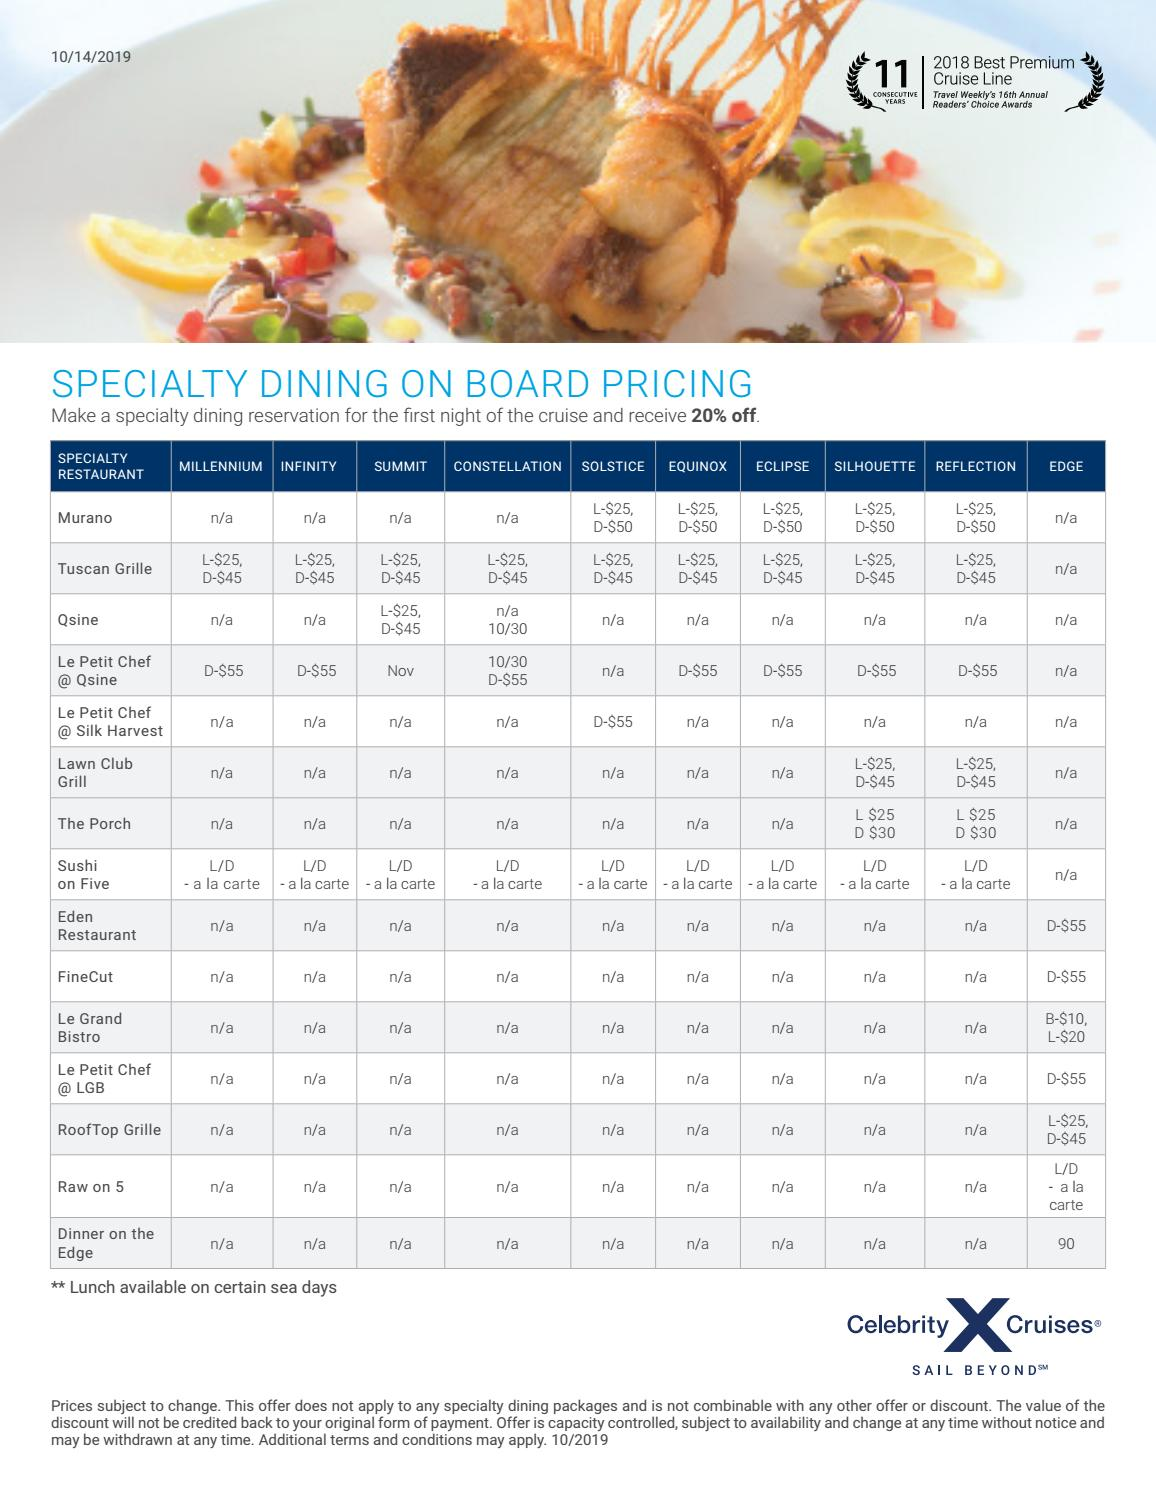 Celebrity Cruises Specialty Dining Pricing By Cia Marítima Issuu